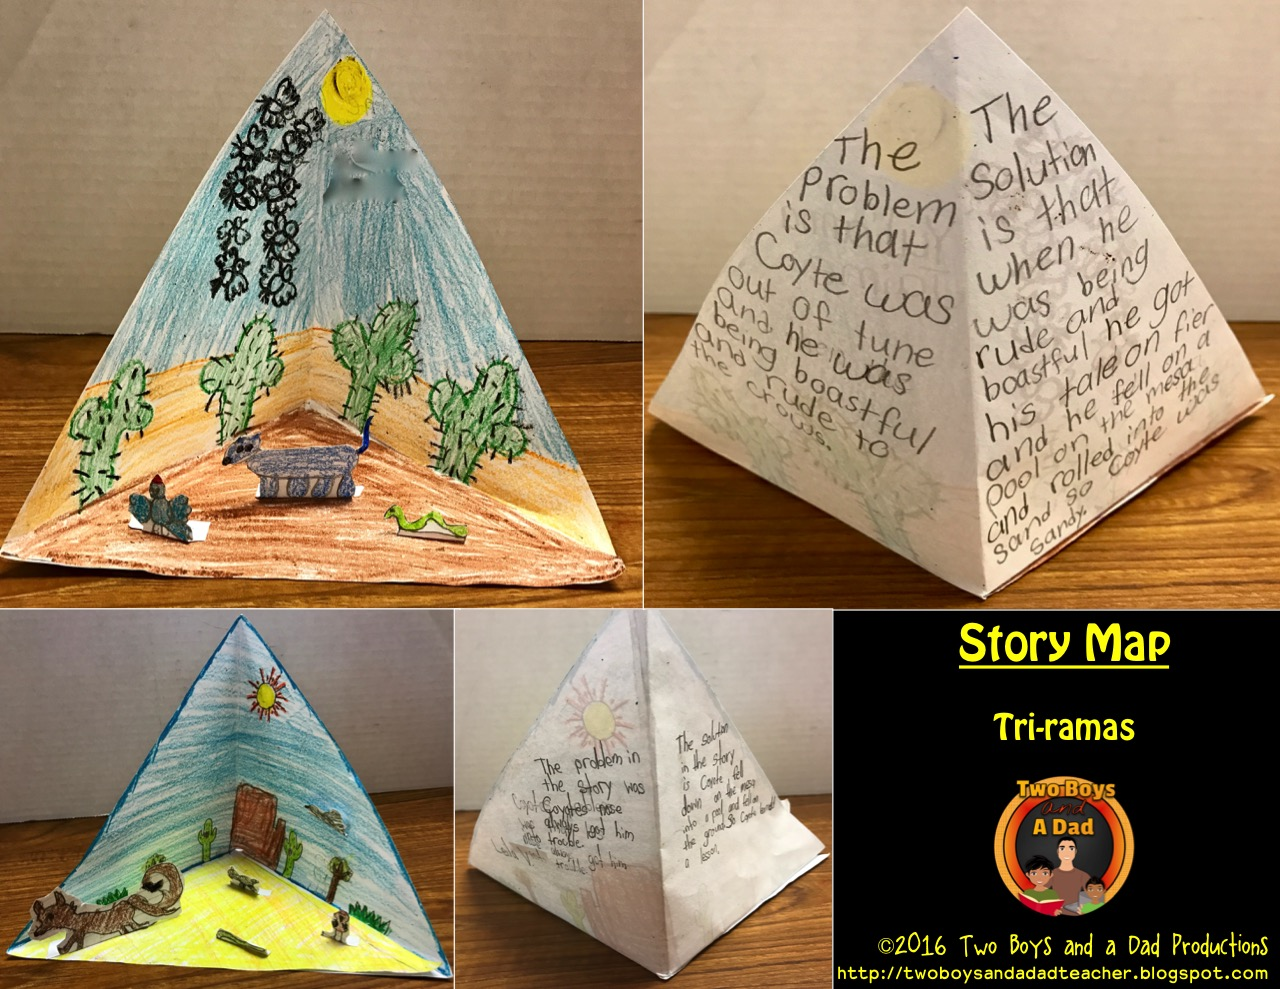 Tri-rama story map for the literature standards